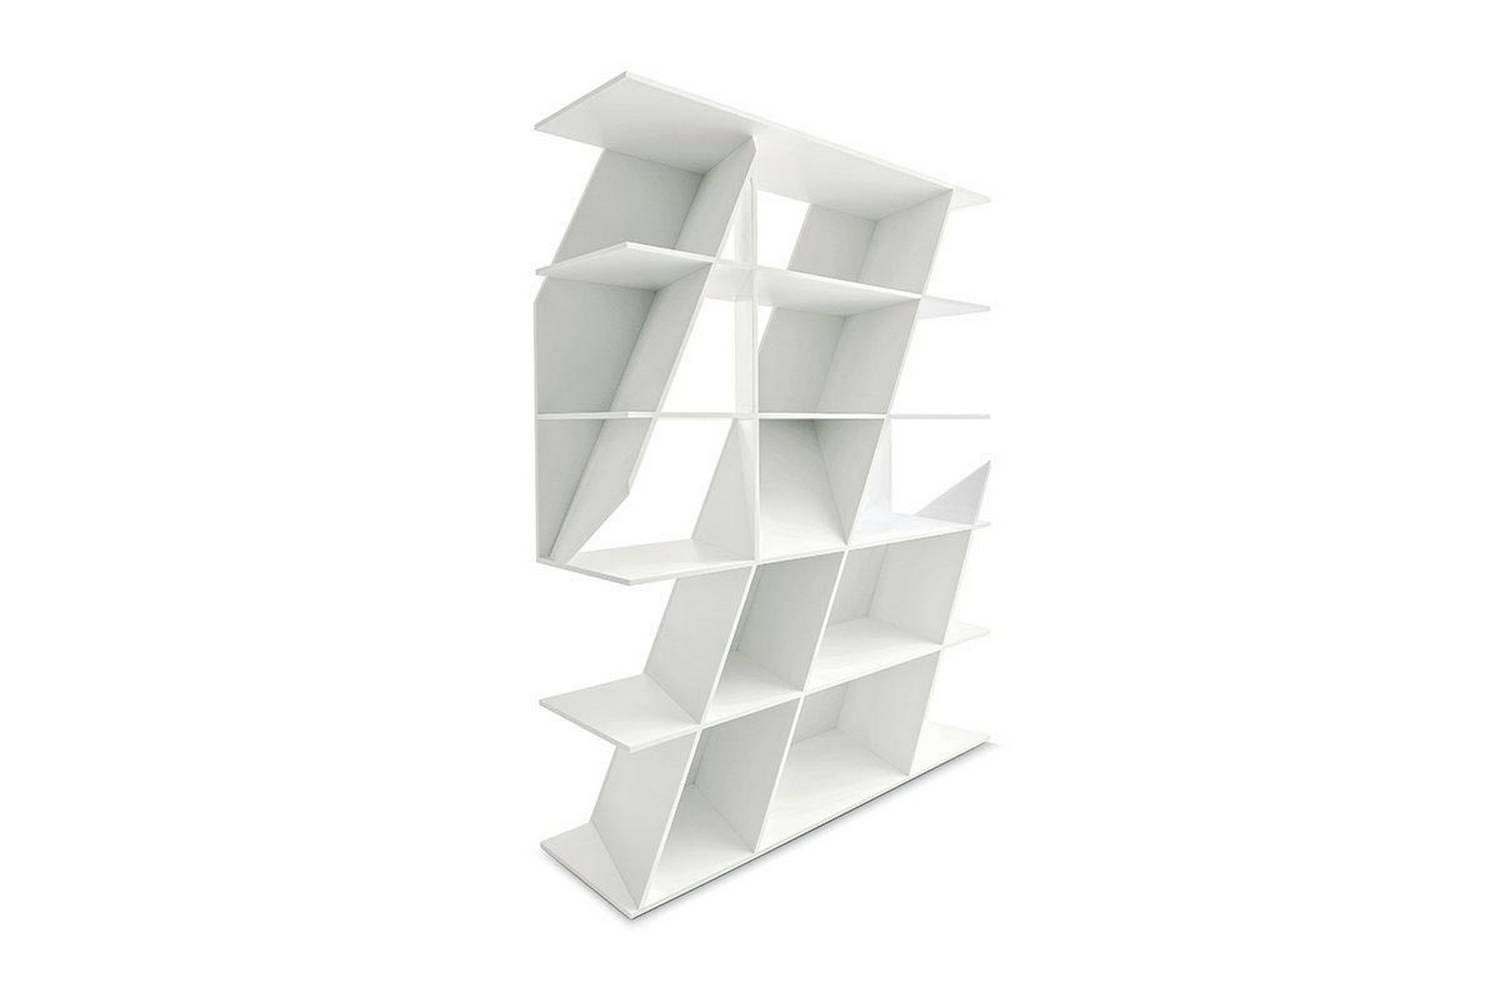 Web Bookshelf by Daniel Libeskind for Poliform